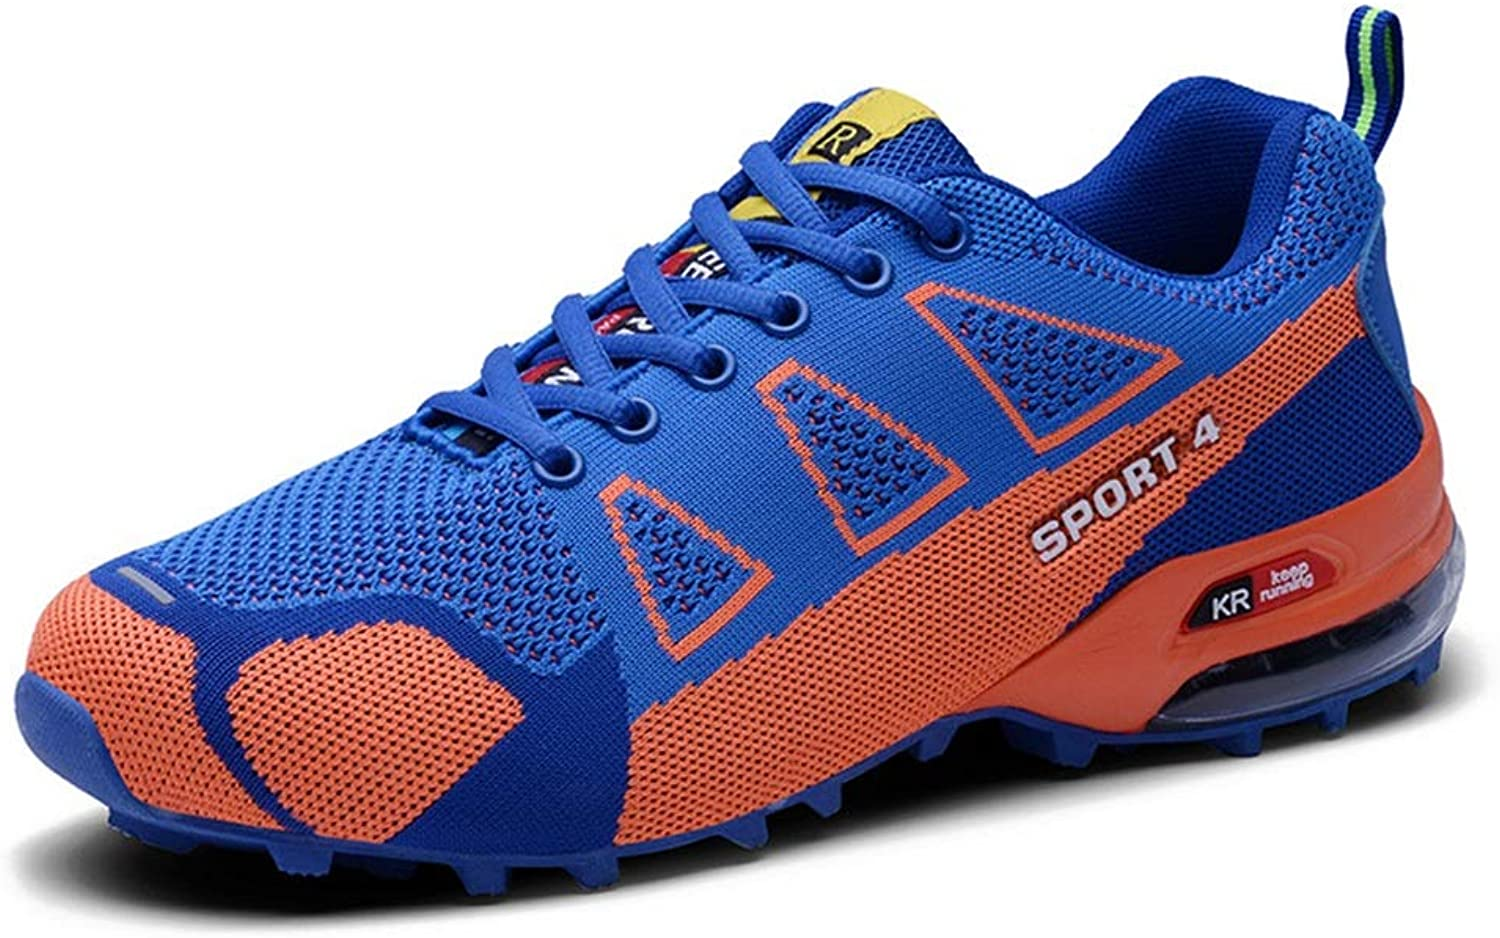 Ywqwdae Mens Casual Sport Trainers Soft Sole Climbing Walking Non Slip Outdoor Sneakers (color   bluee, Size   UK 10.5)